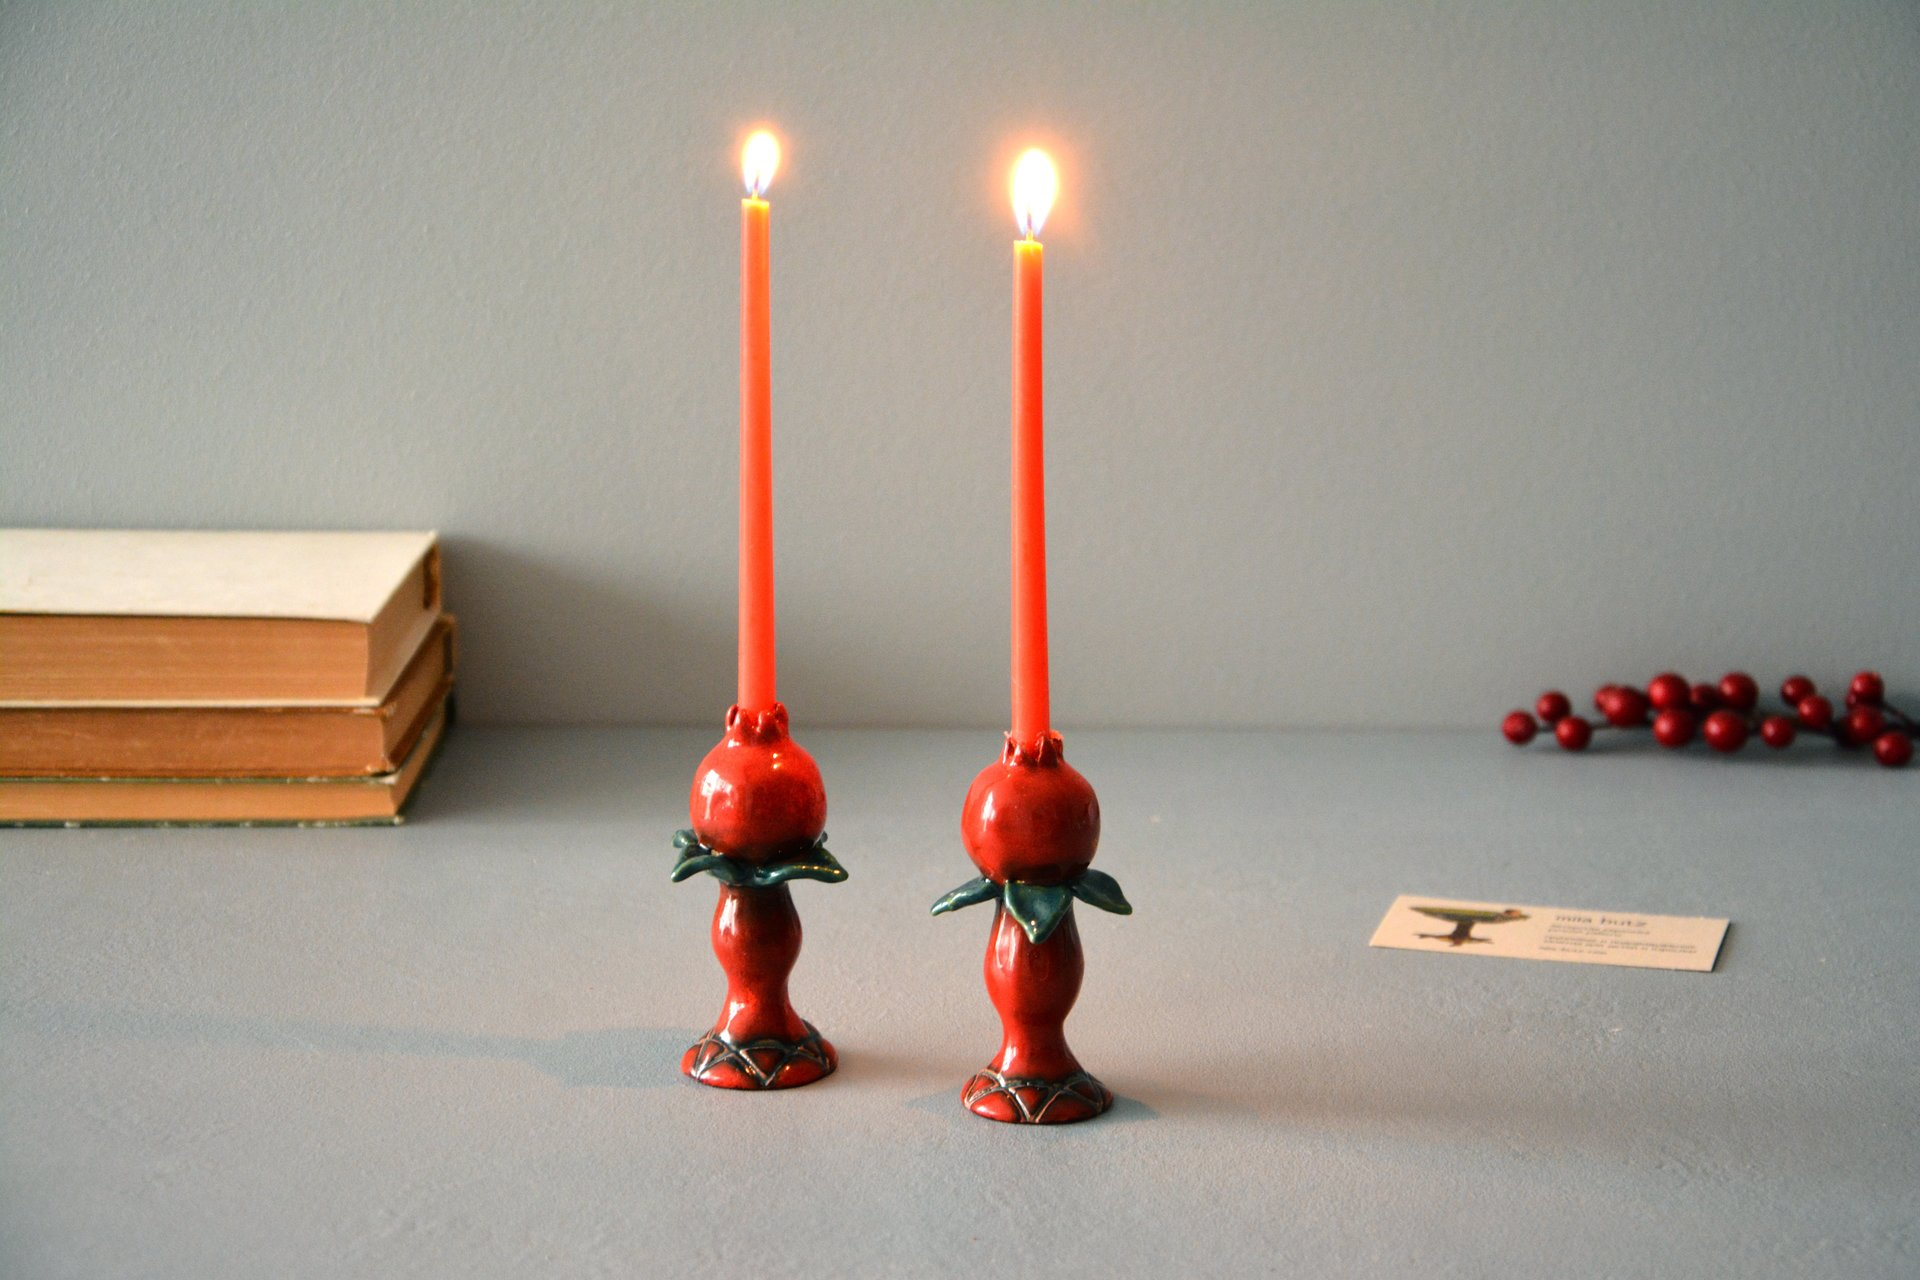 Pair of candlesticks for Shabbat, height - 9 cm, photo 3 of 4.